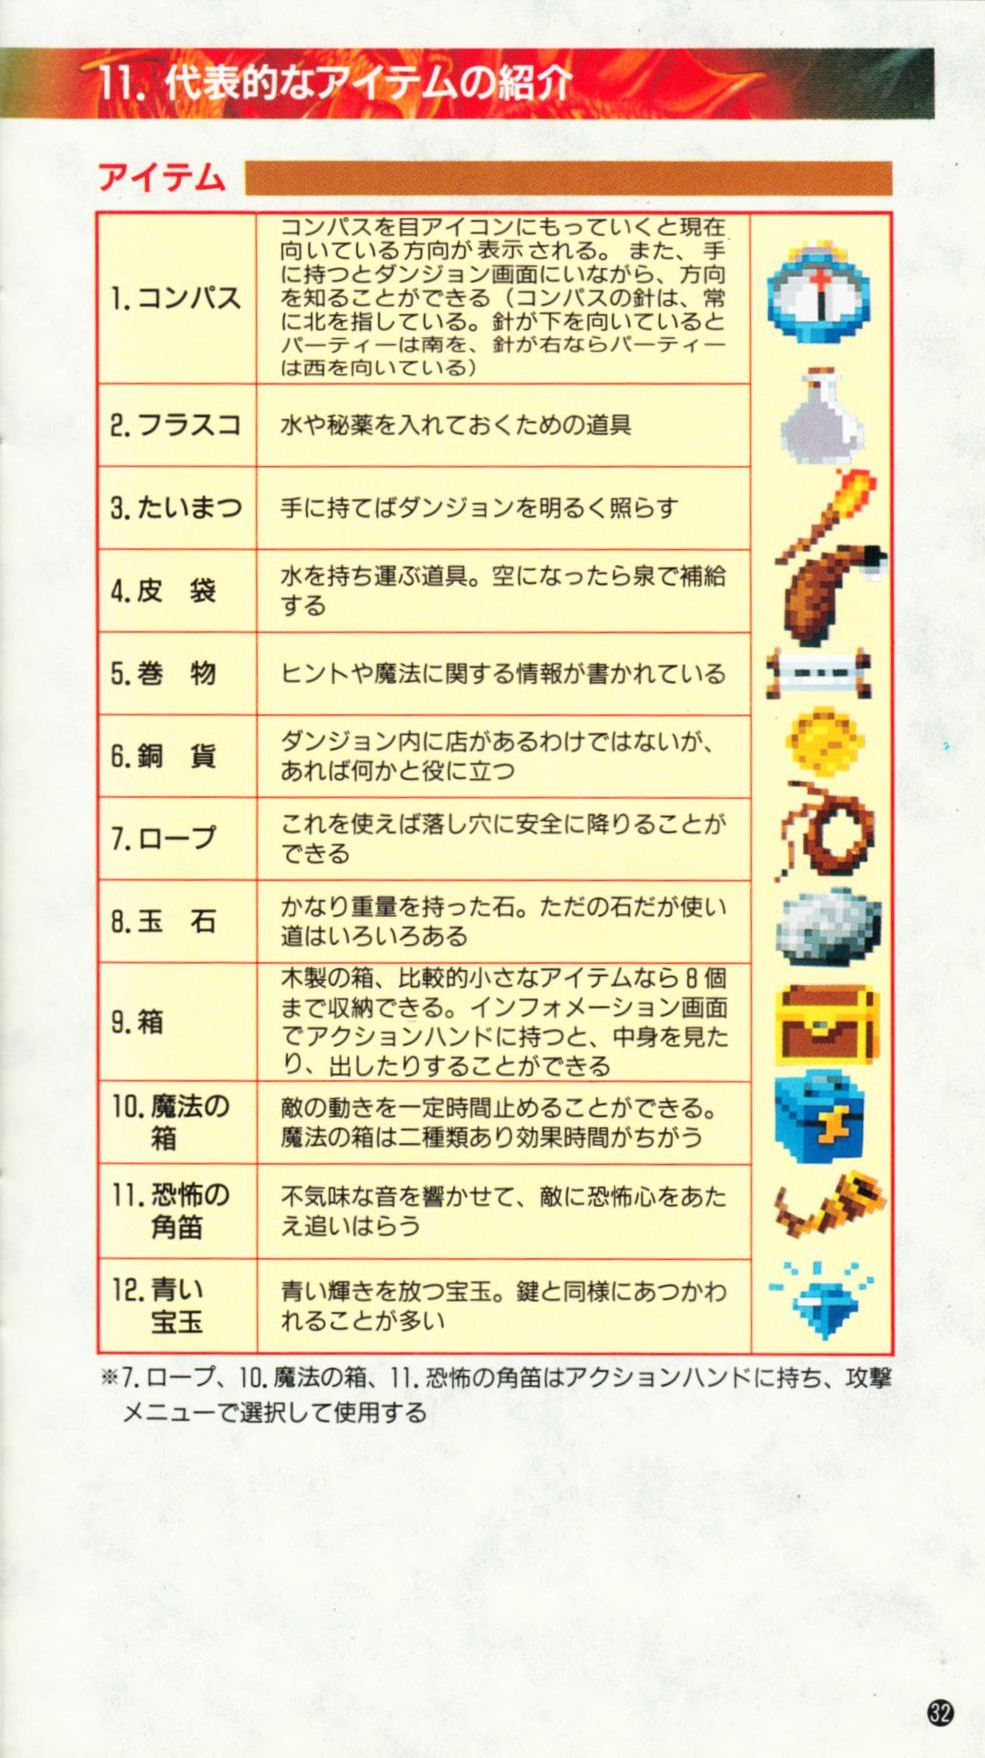 Game - Dungeon Master - JP - Super Famicom - Manual - Page 035 - Scan